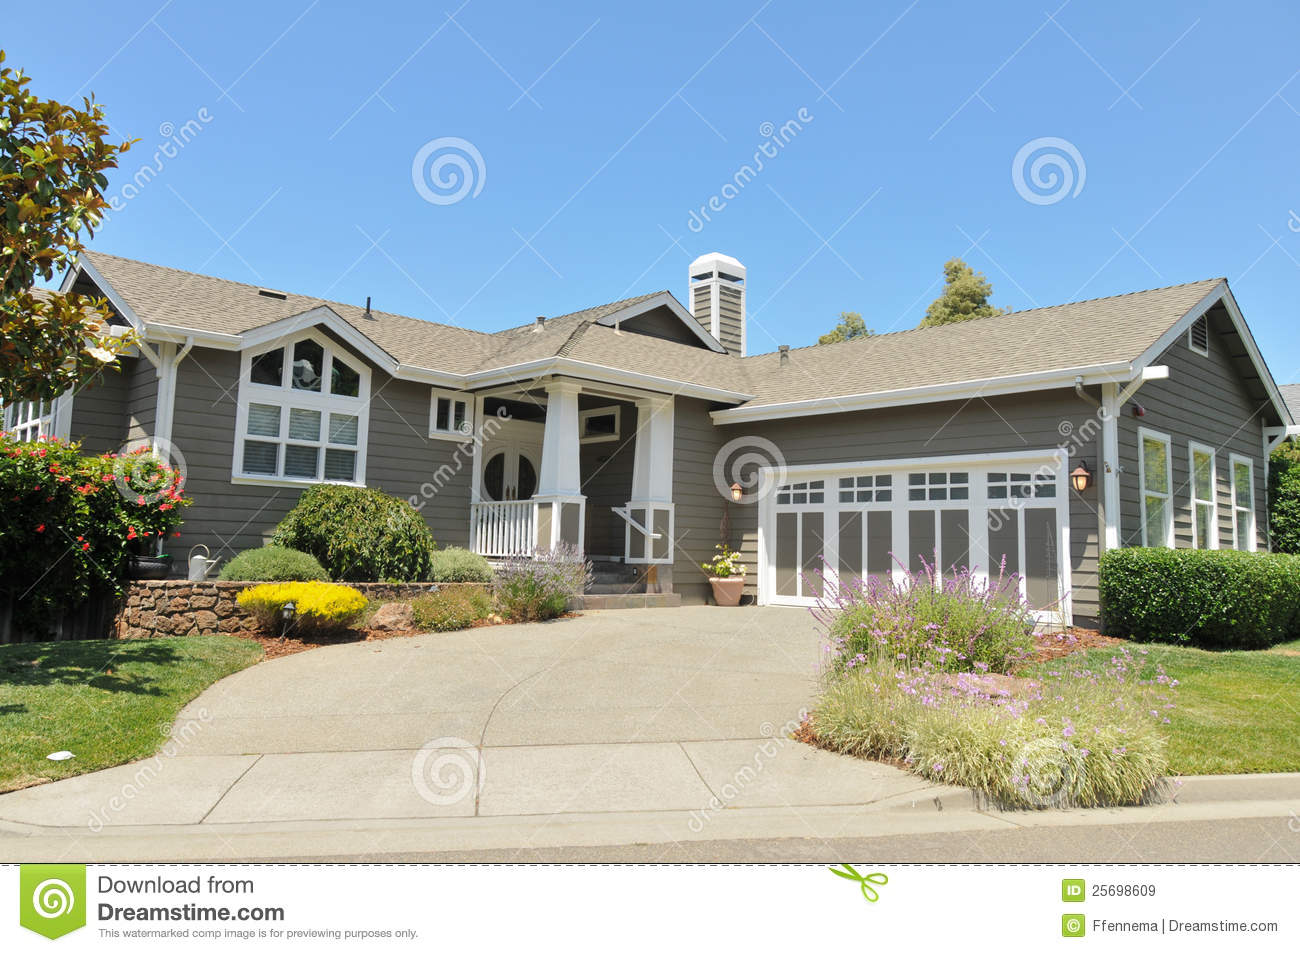 Two Story Single Family House With Driveway Royalty Free Stock Images Image 25698609